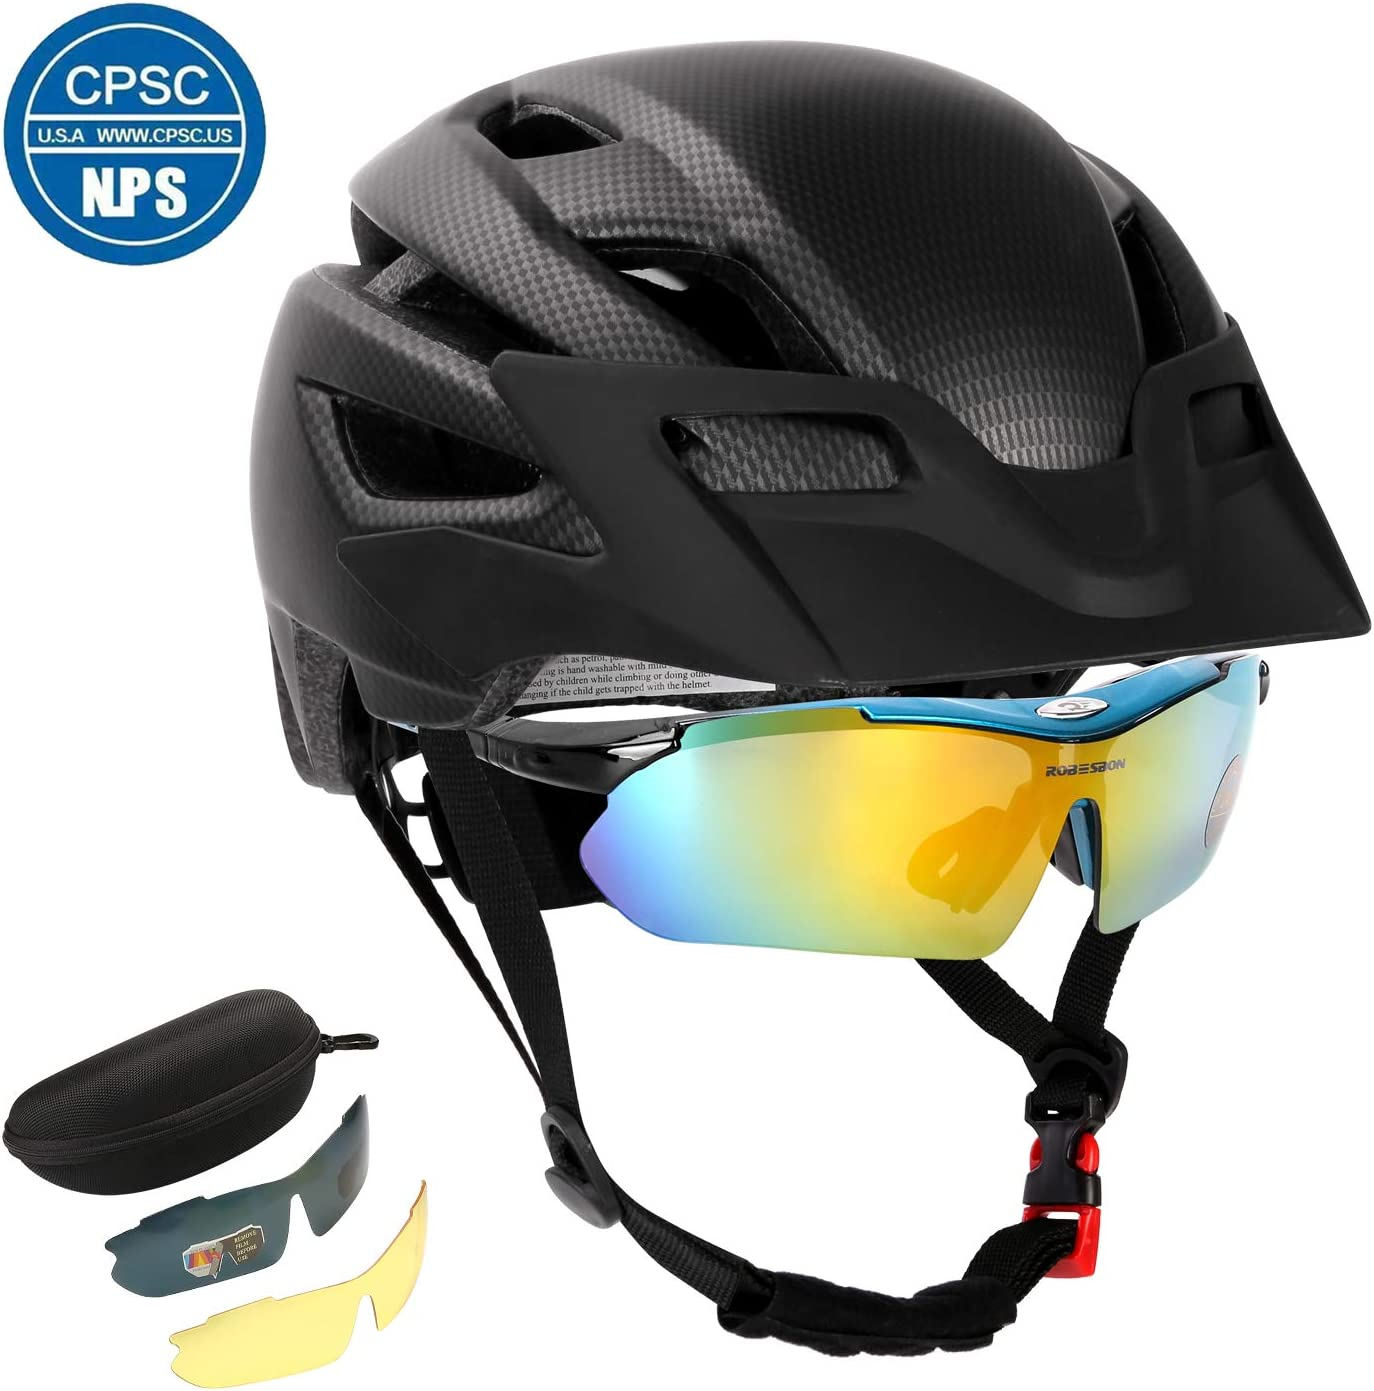 Odoland Bike Helmet with Detachable Goggle, Bike Headlight and Bike Taillight for Road or Mountain Cycling Lightweight Adjustable and Breathable Bicycle Helmet for Adults and Youth, CPSC Certification